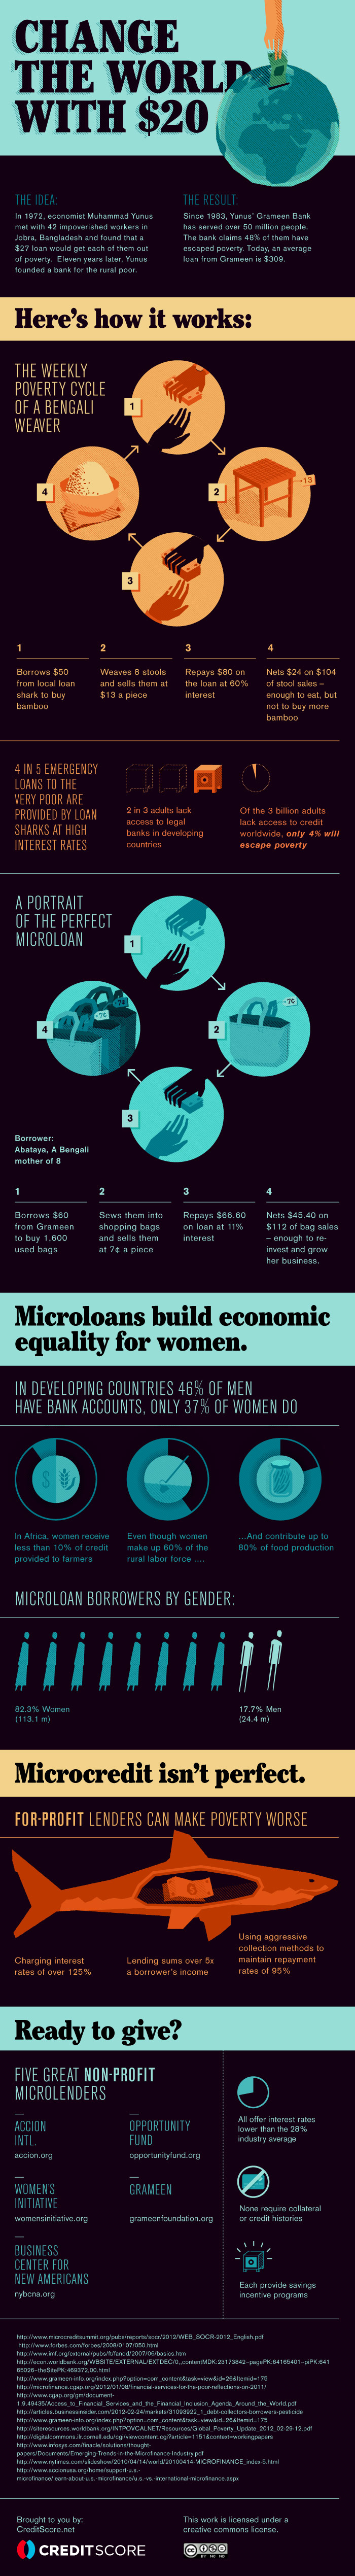 Microlending: Changing the World $20 at a Time (Infographic) image 120907MicrolendingFINAL1